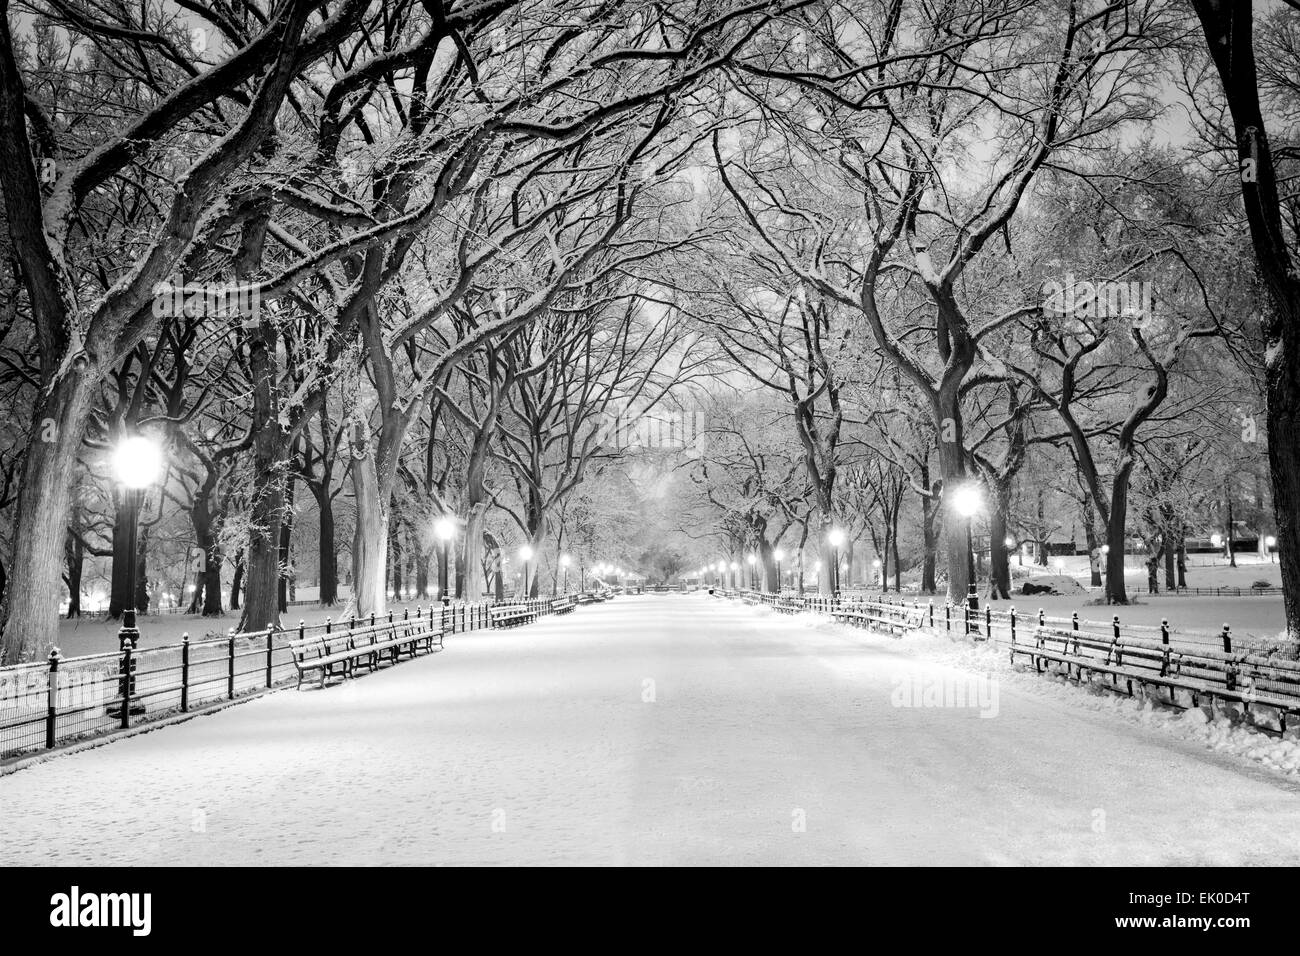 The Mall, Central Park, NYC, during a snow storm, early in the morning. Stock Photo